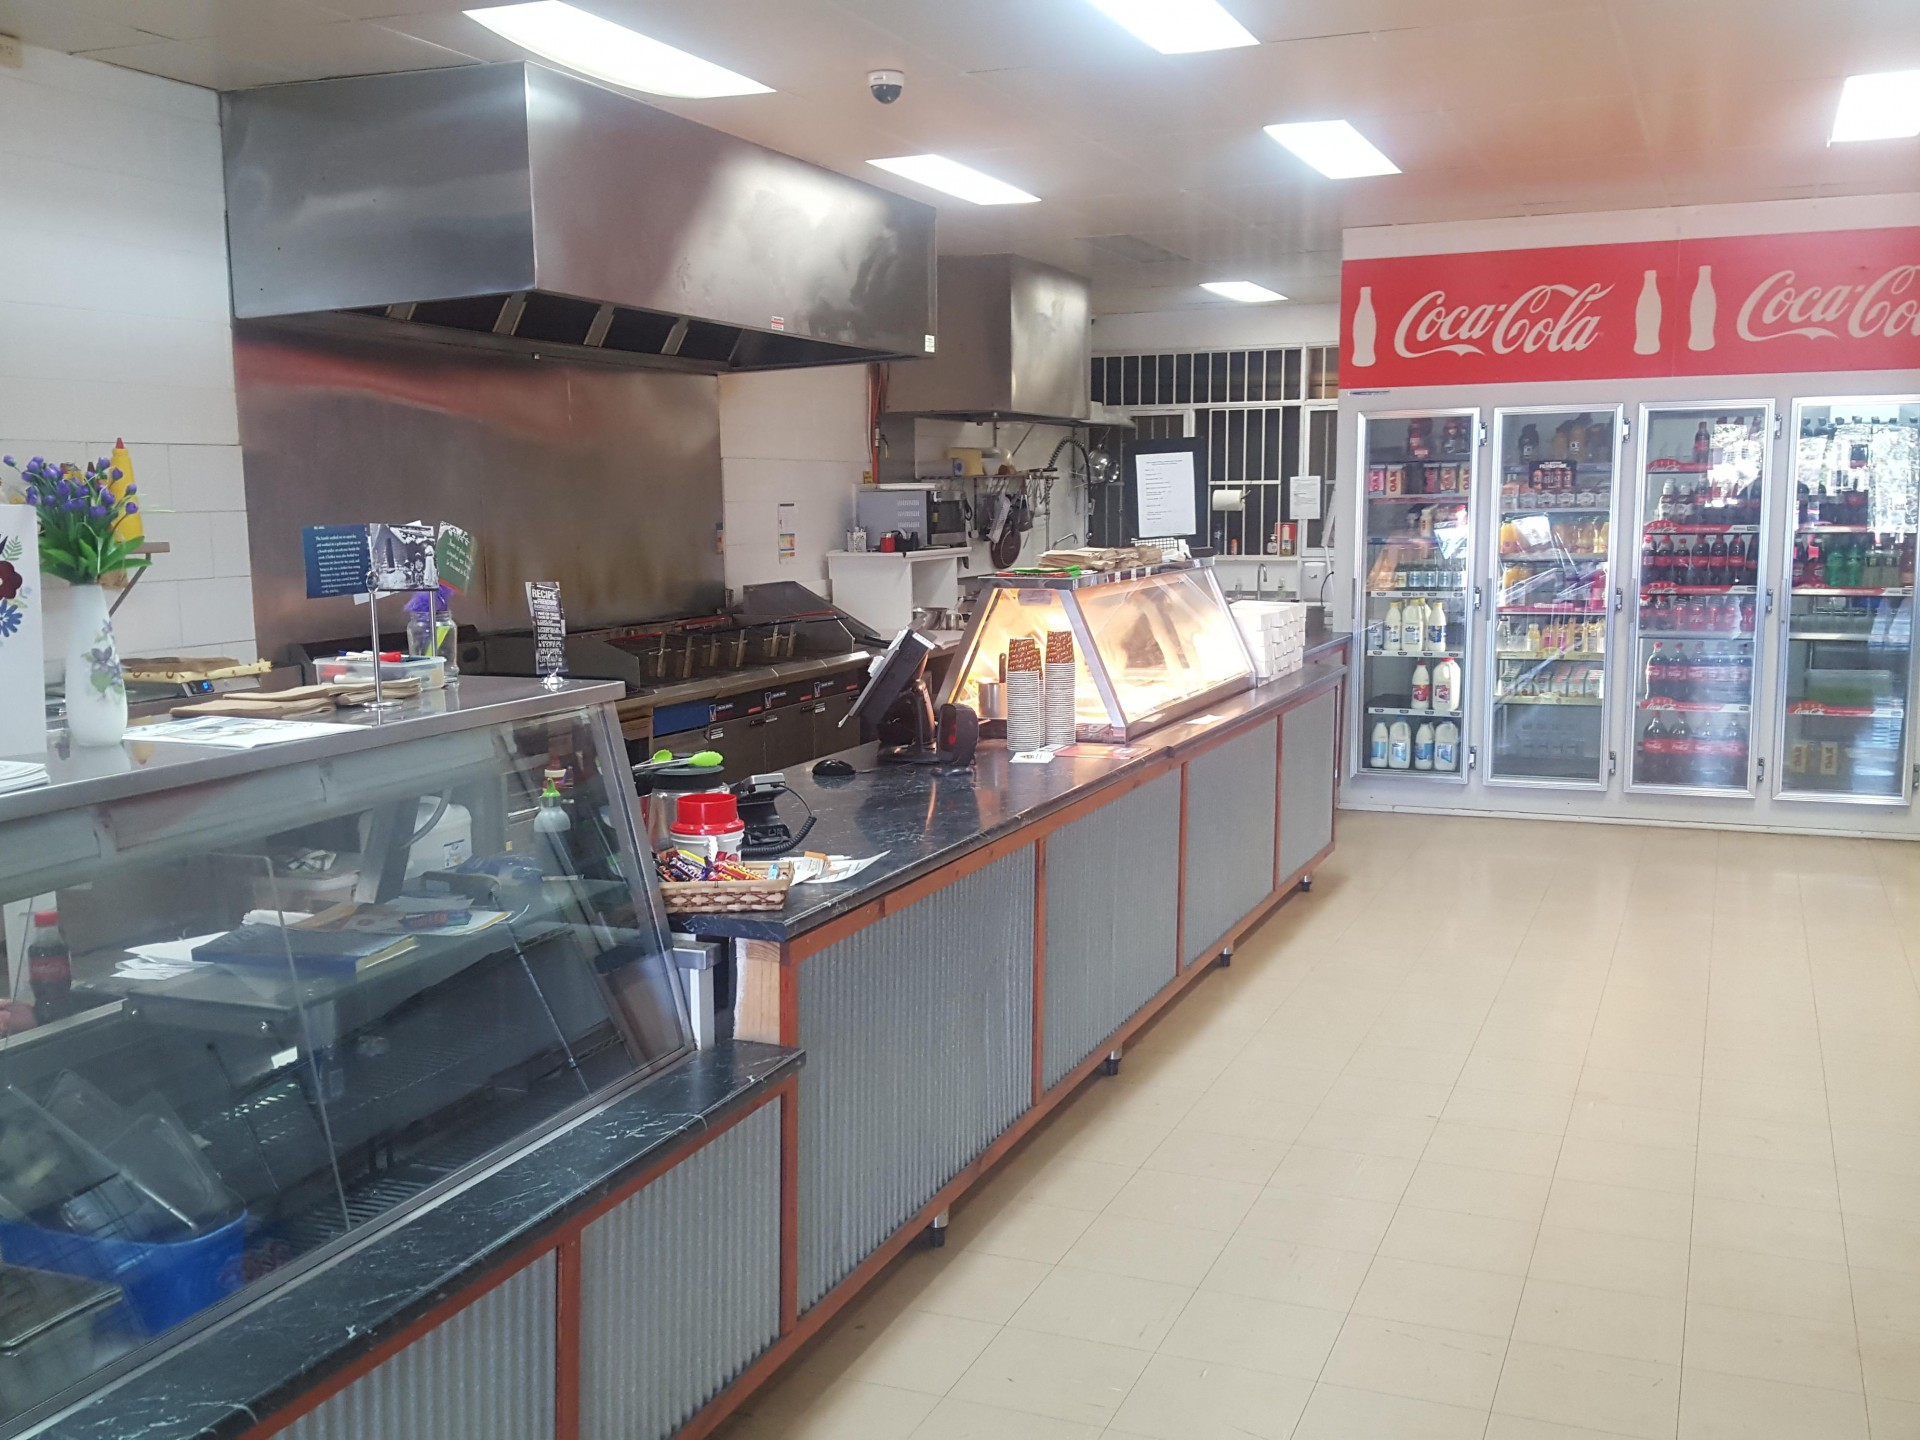 Busy Milkbar/Takeaway shop in tourist hot-spot